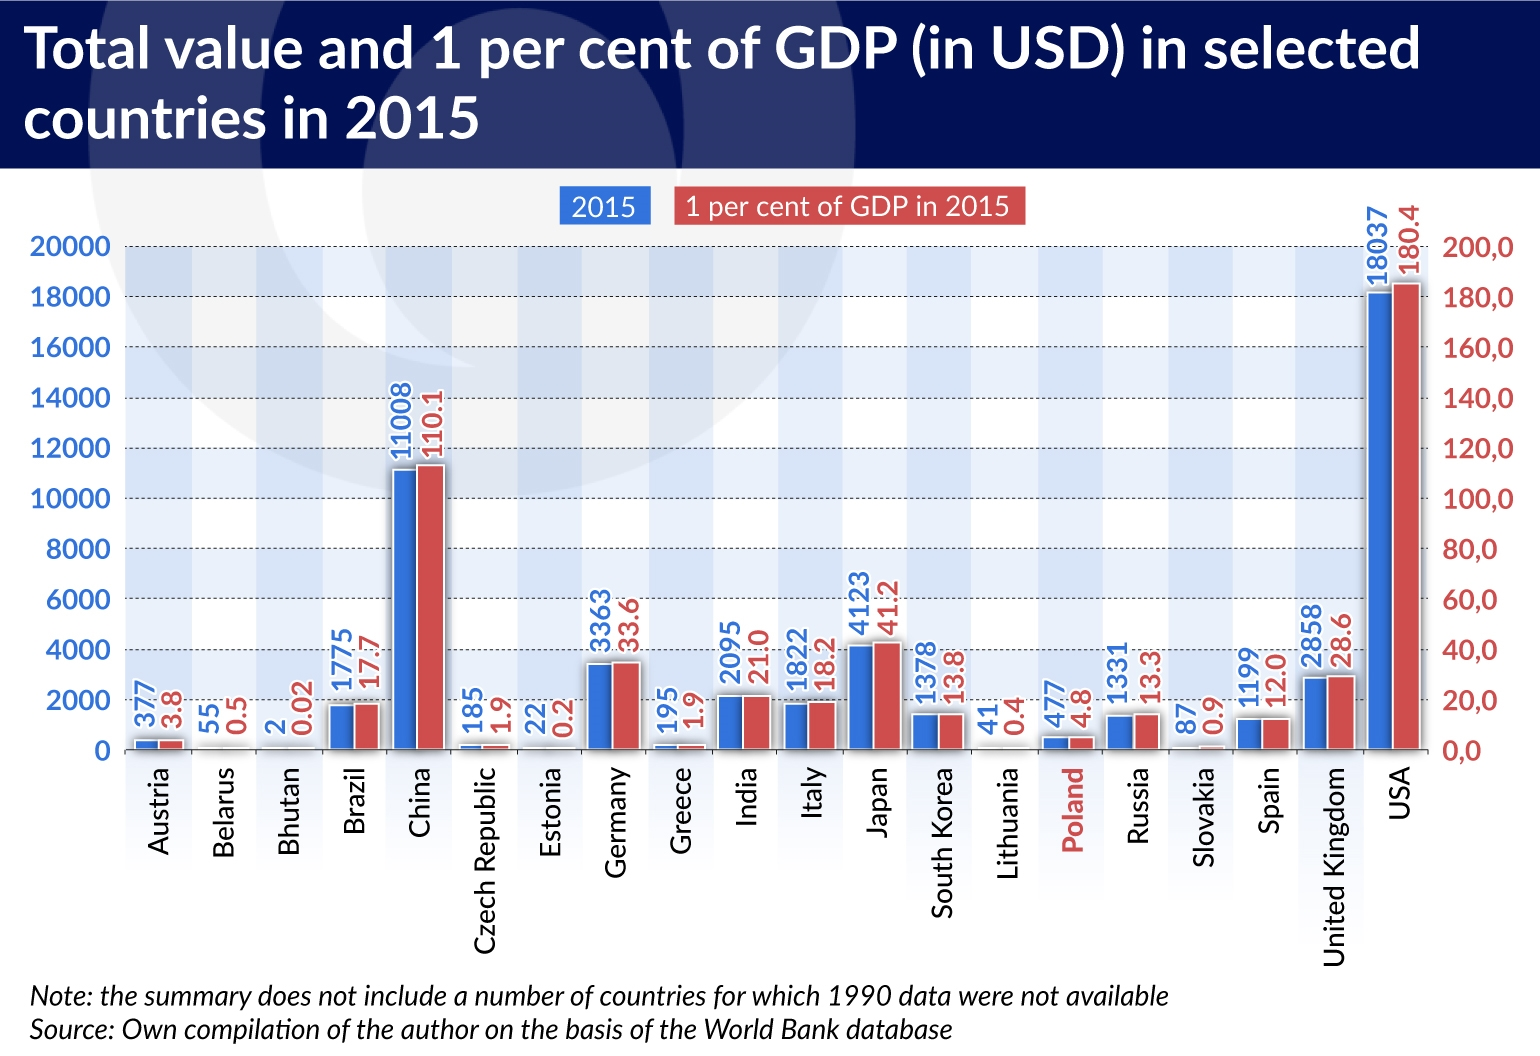 Poland had the biggest GDP per capita growth in the OECD and